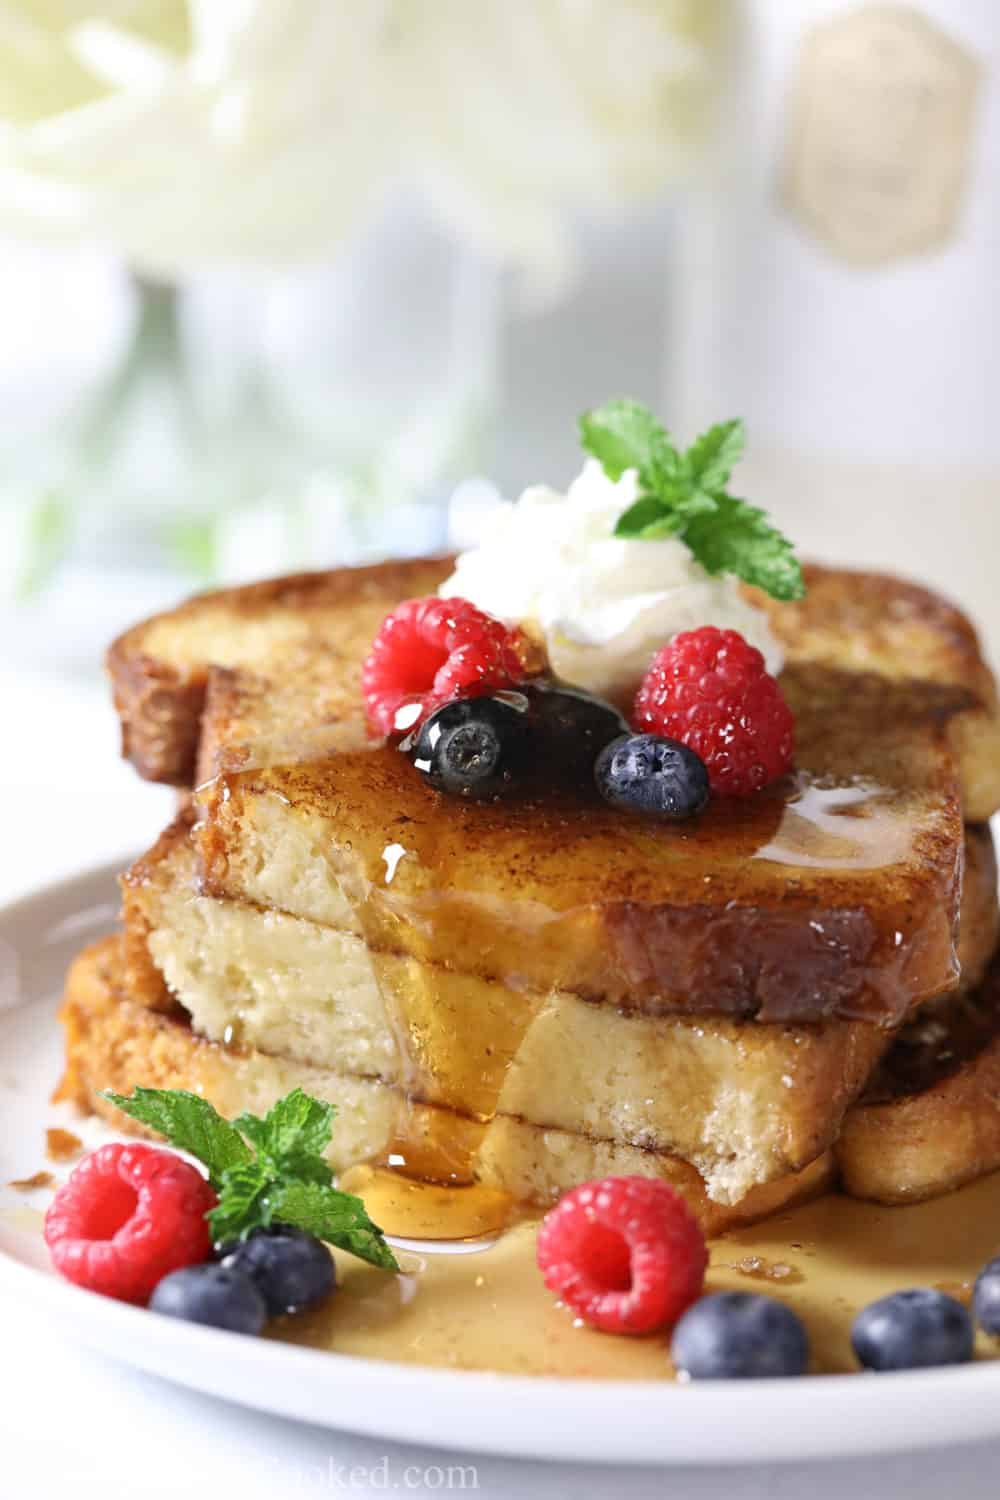 close up image of sliced brioche french toast with maple syrup, raspberries, blueberries, and mint on top